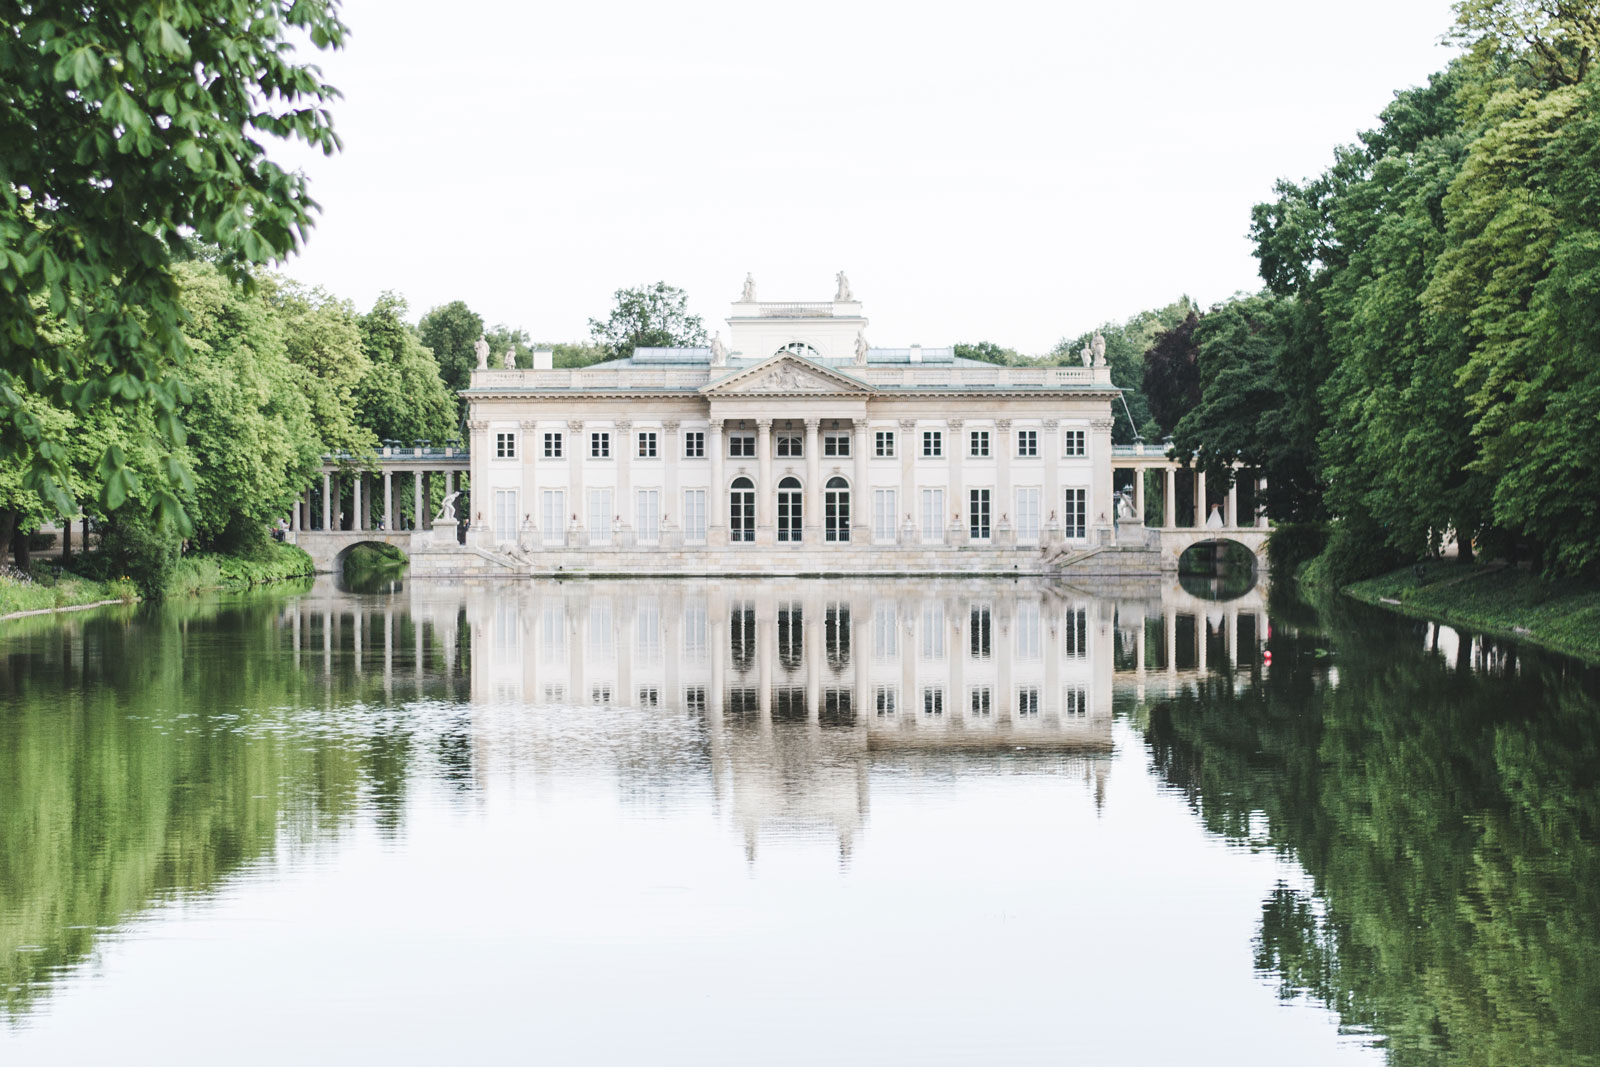 Palace-on-the-Isle-in-Lazienki-Park